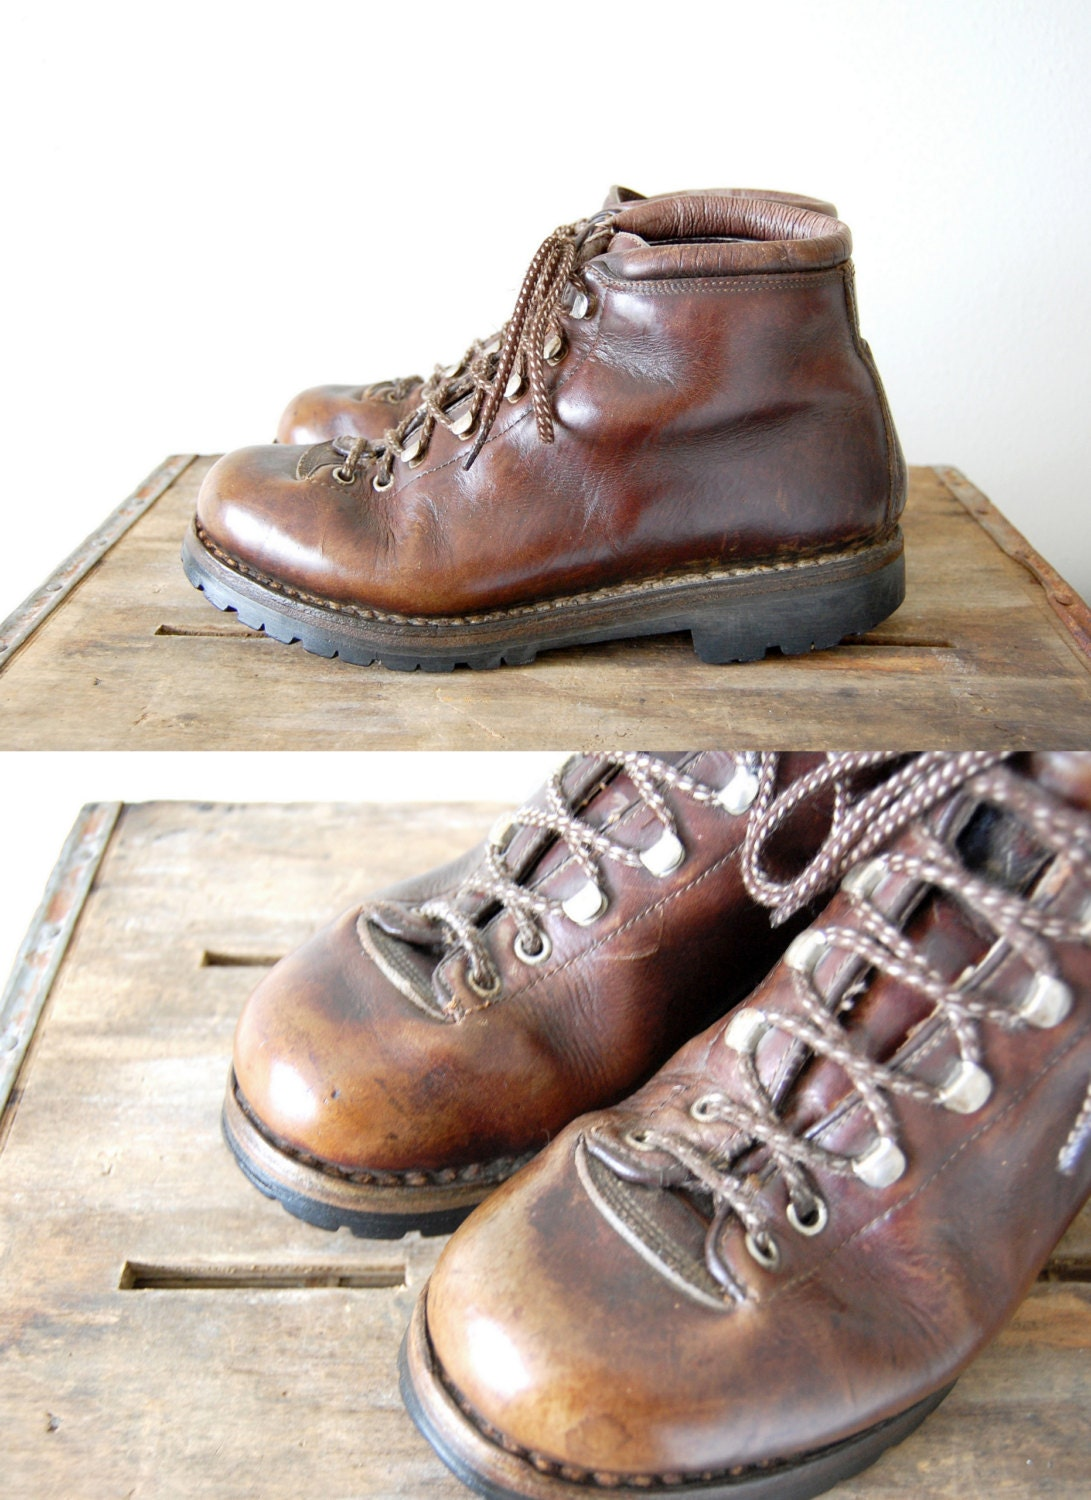 Vintage Fabiano Rio Boots Mens Brown Leather Hiking Boots